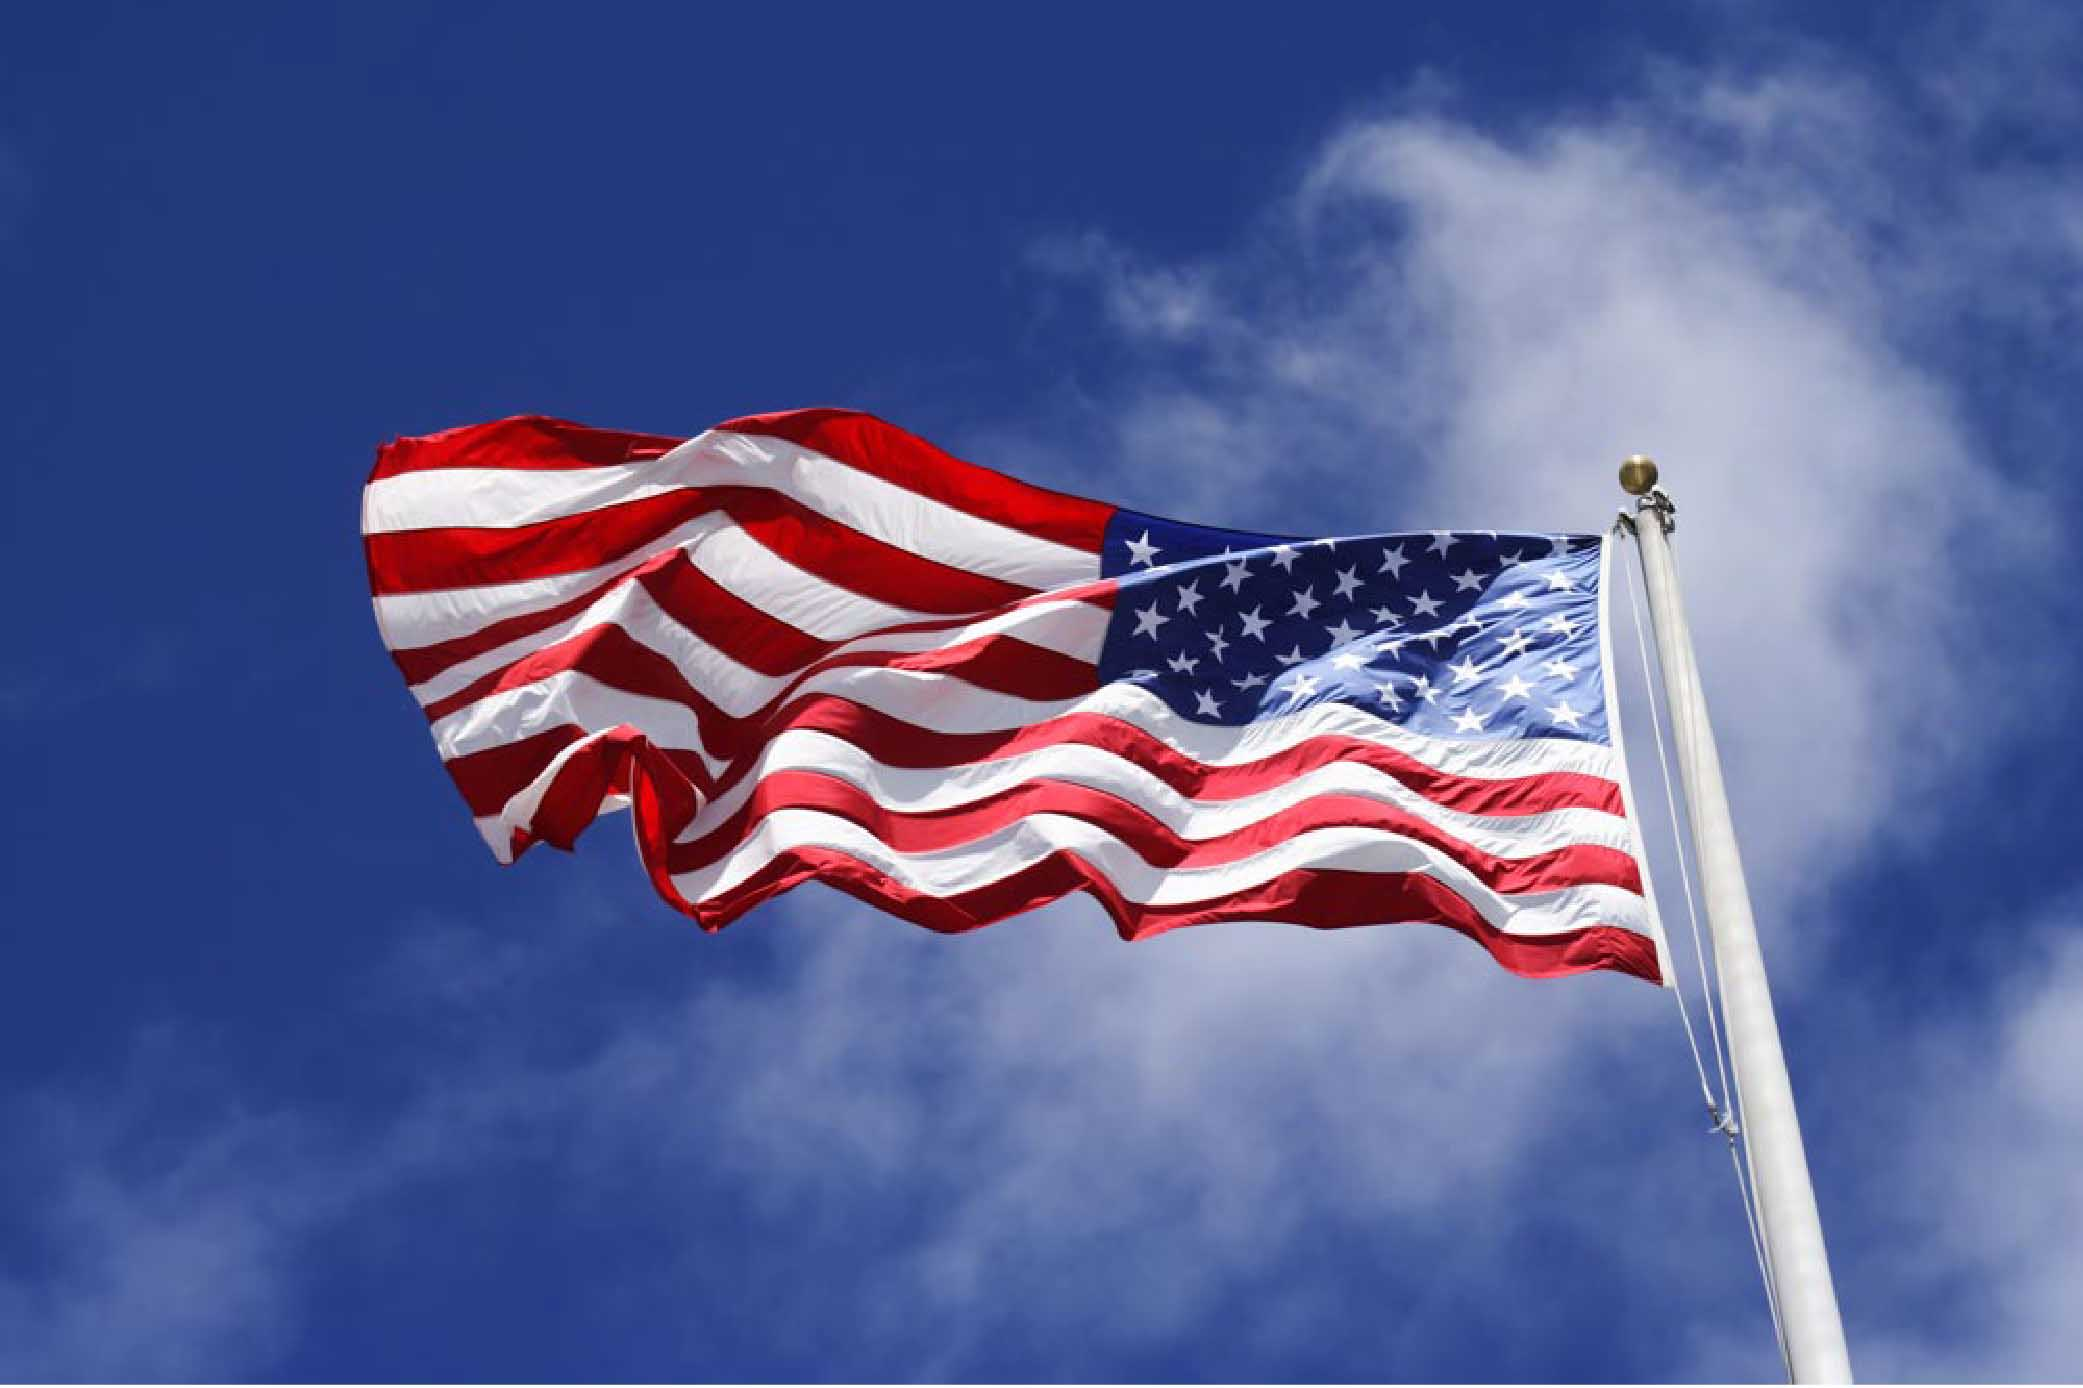 waving american flag pics wallpaper